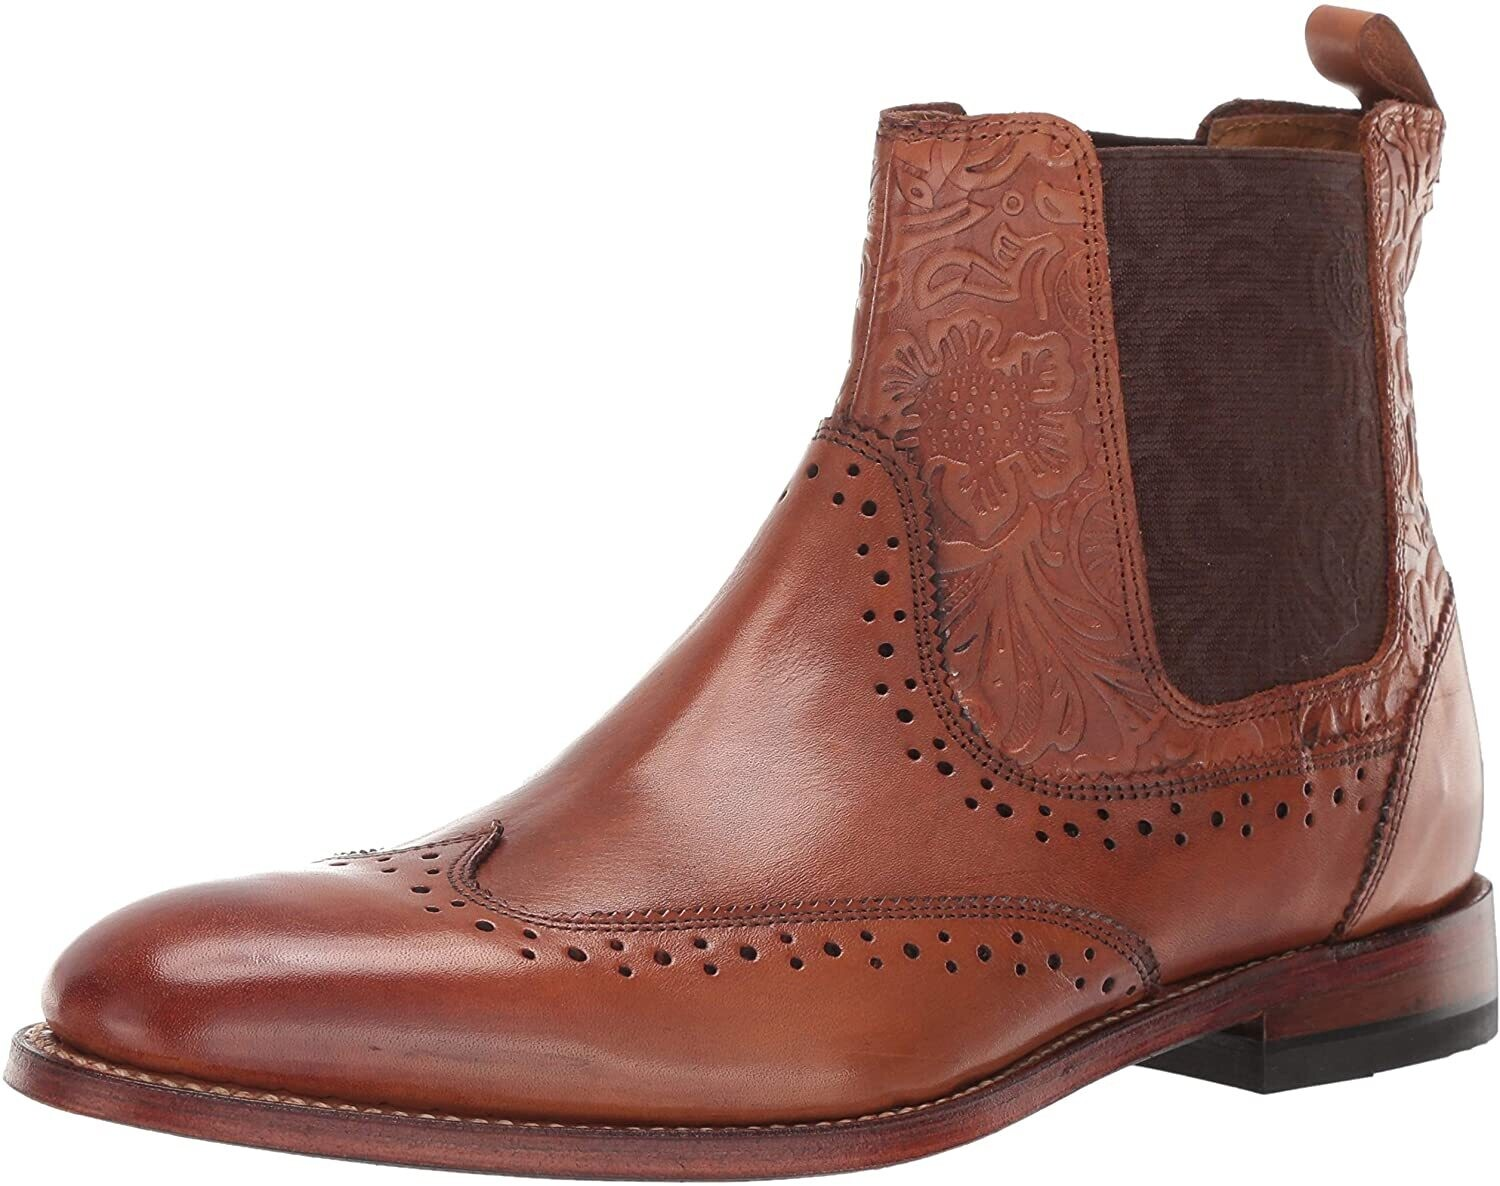 STACY ADAMS SHOES 00084